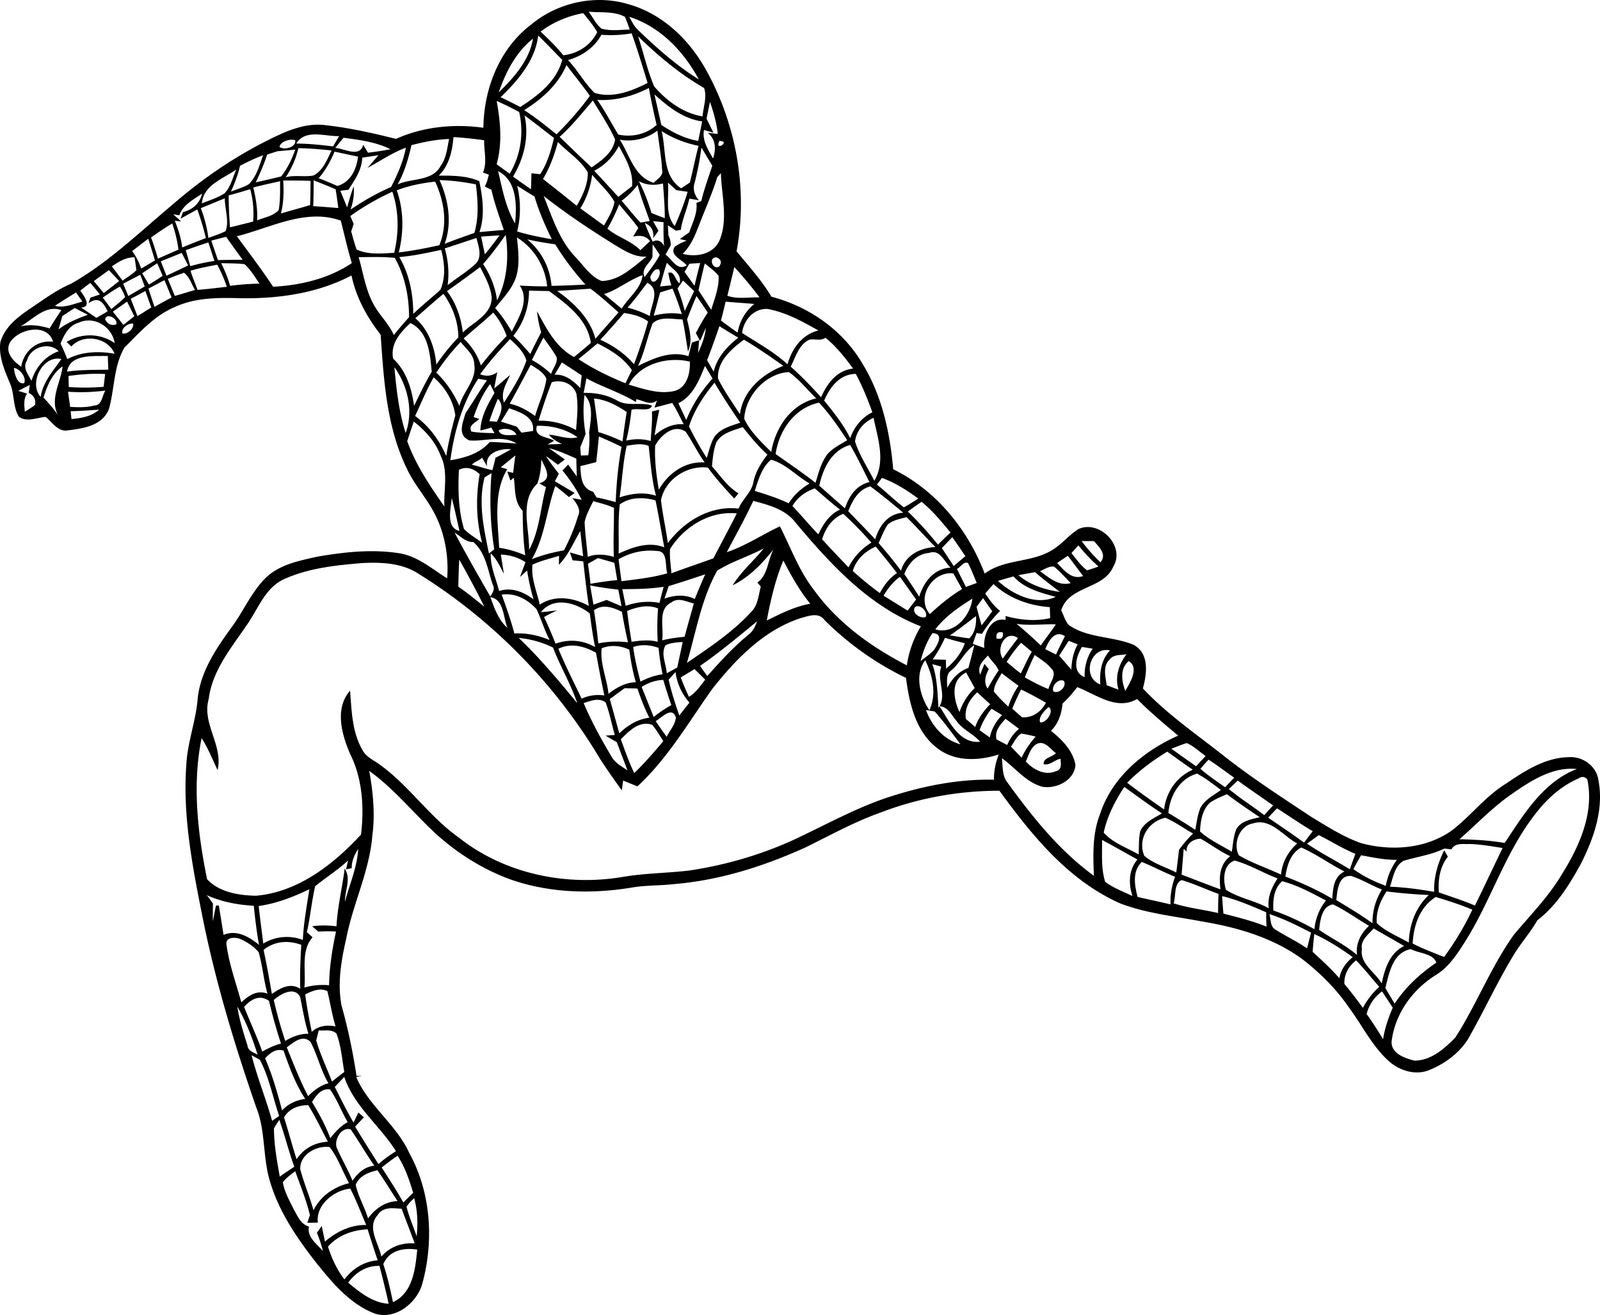 Cool Waiting Spider Man Coloring Page Avengers Coloring Pages Superhero Coloring Pages Superhero Coloring